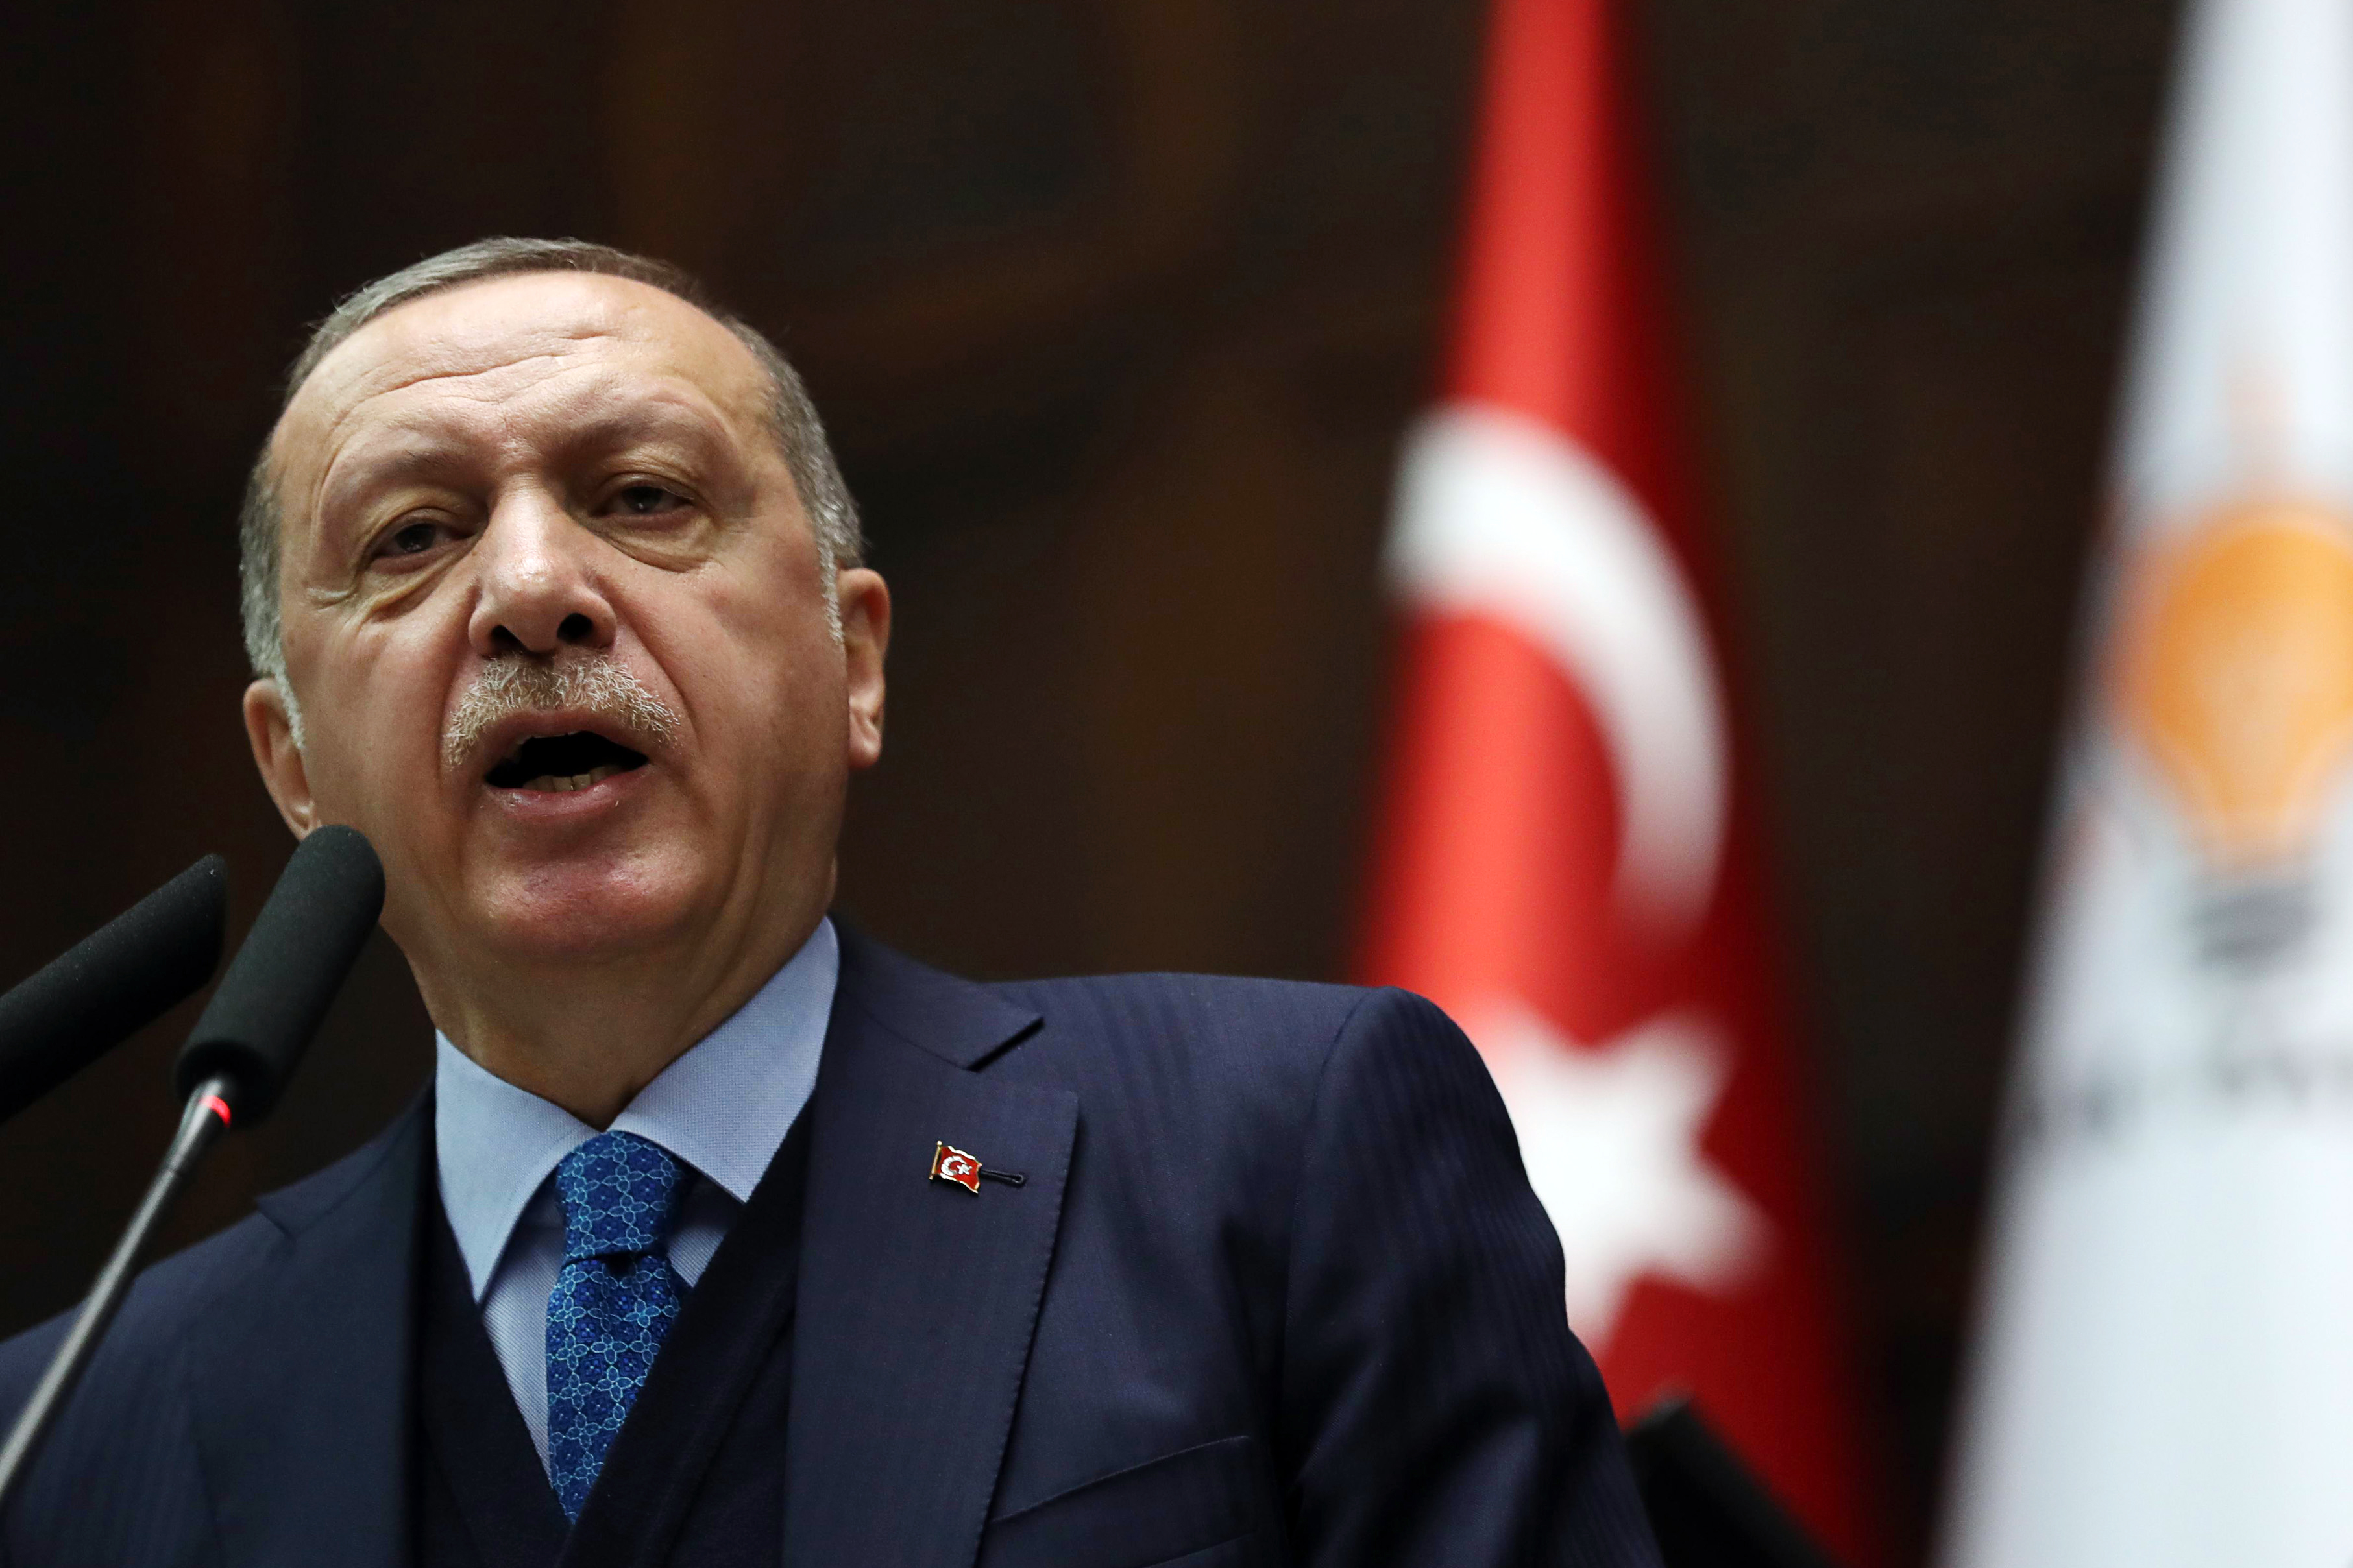 Turkish President and leader of the Justice and Development Party (Photo credit should read ADEM ALTAN/AFP/Getty Images)